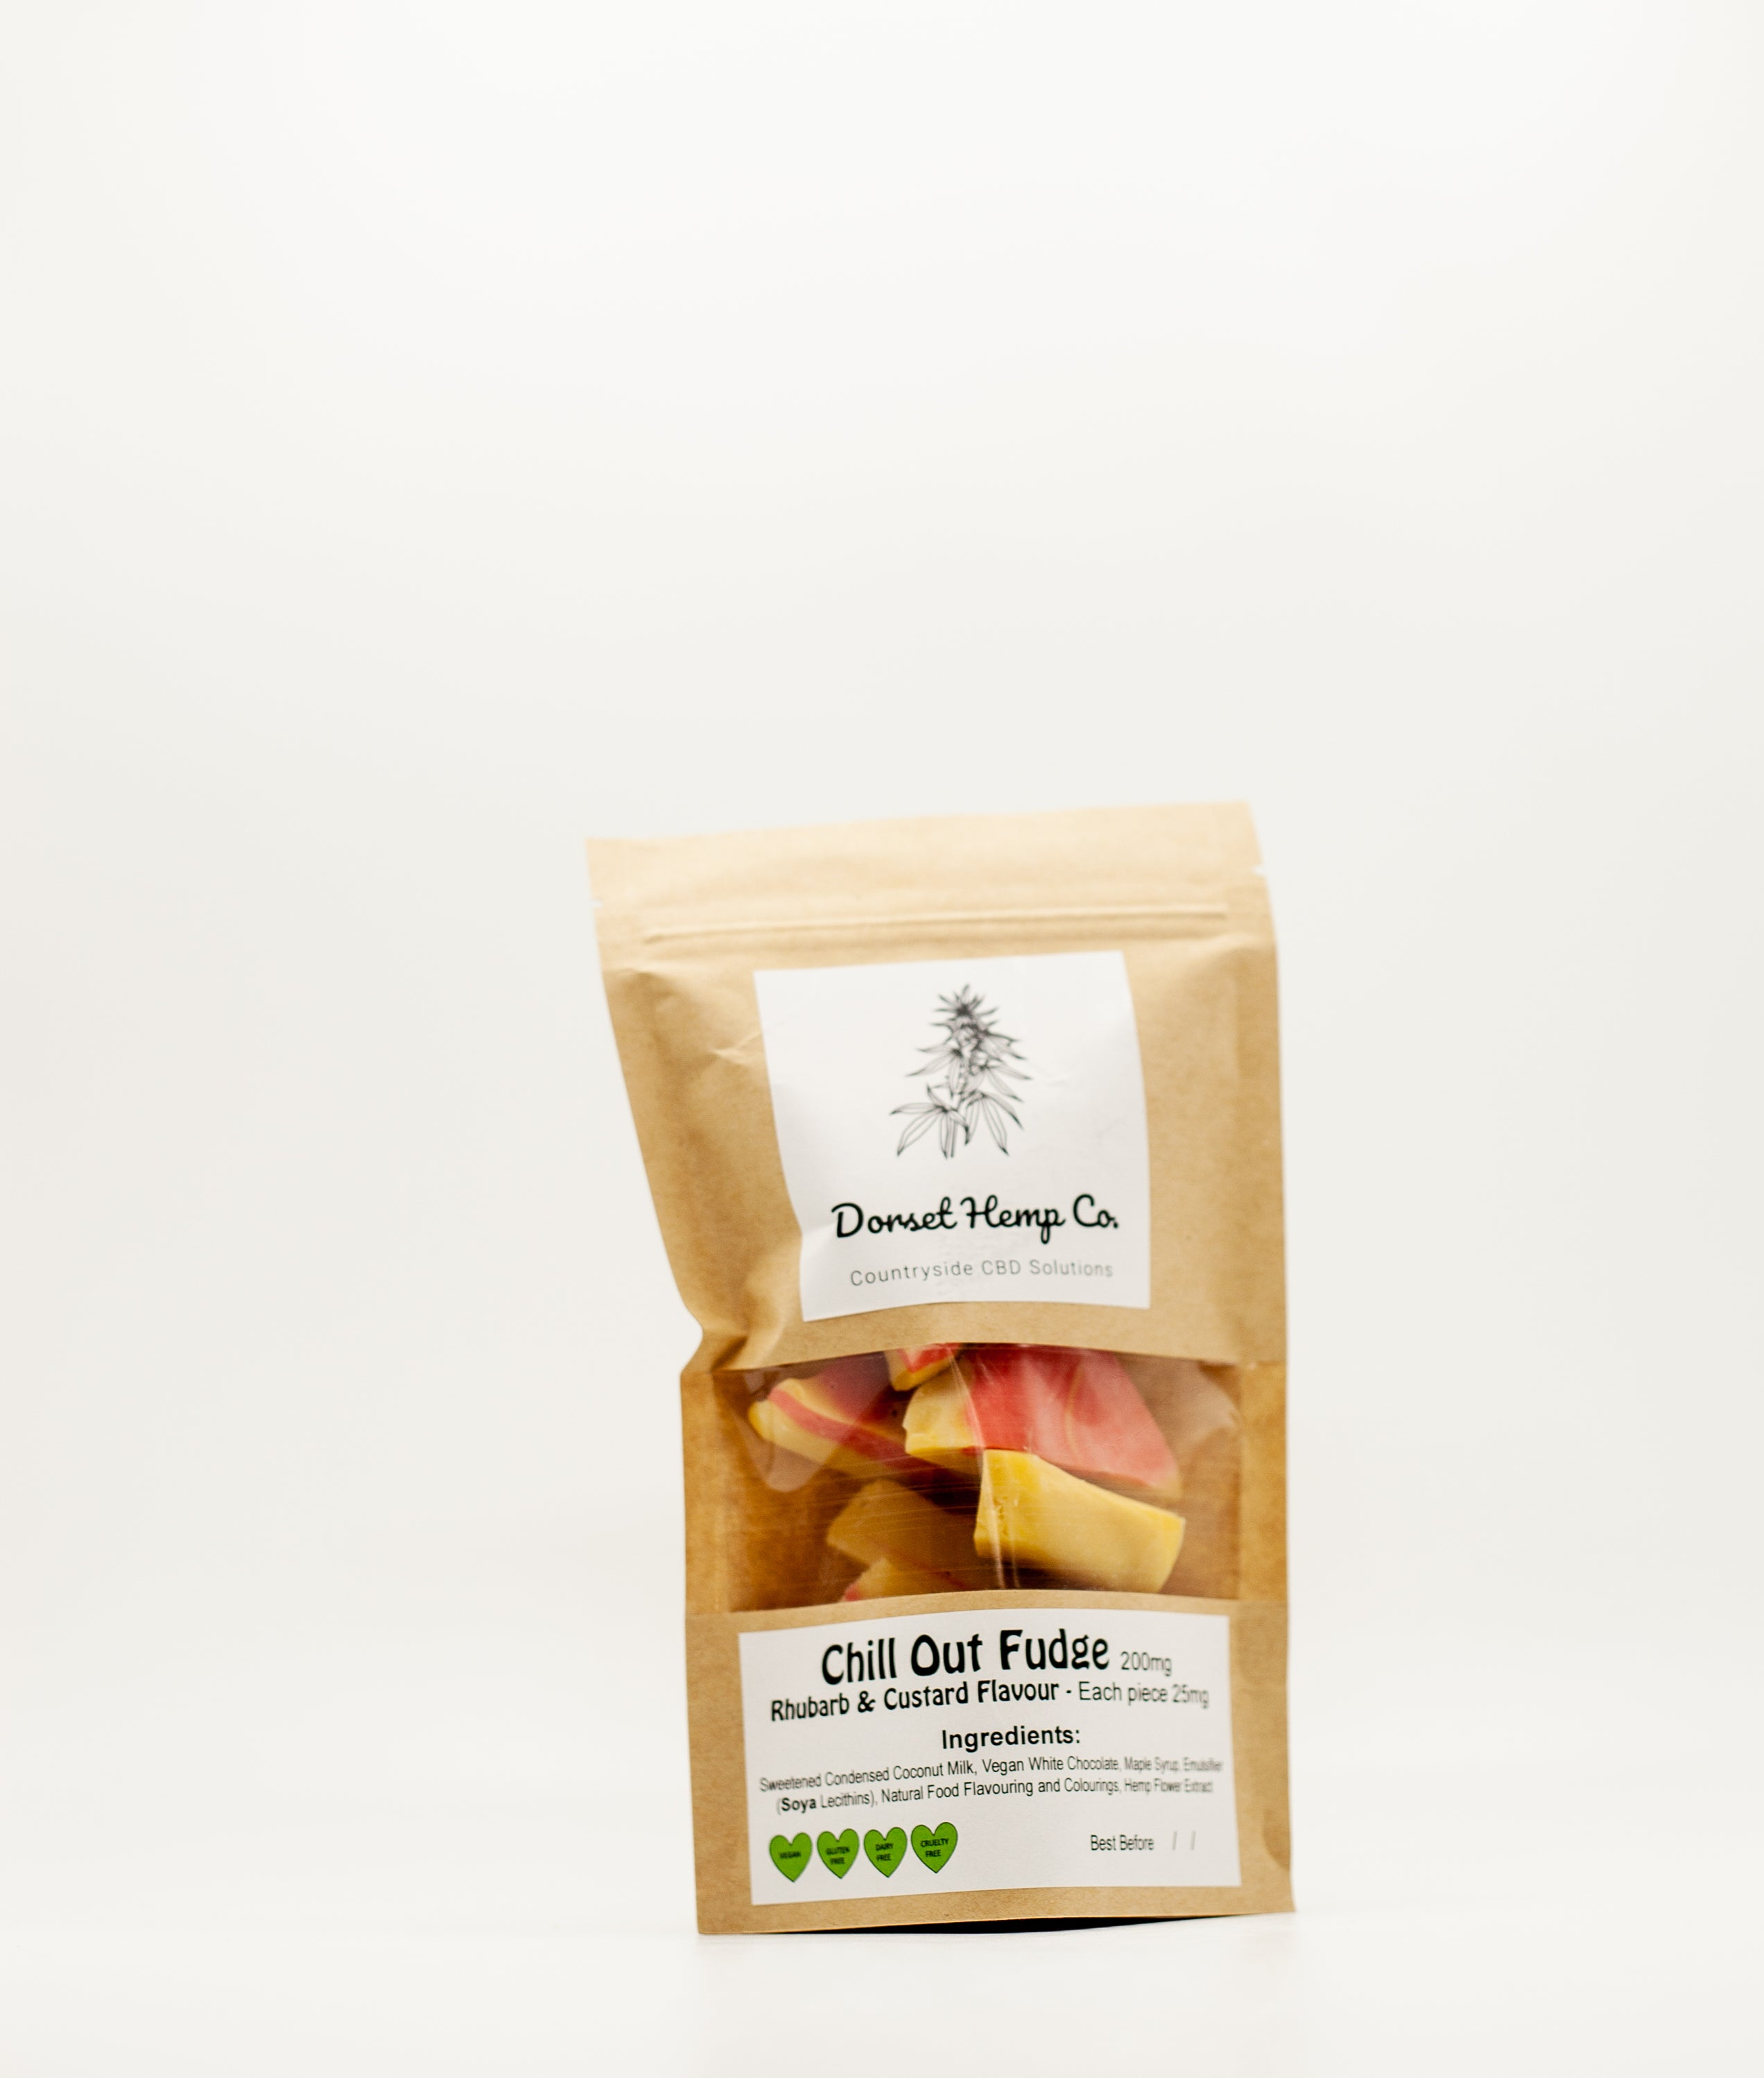 Chill Out Fudge - Rhubarb & Custard Flavour - 200mg